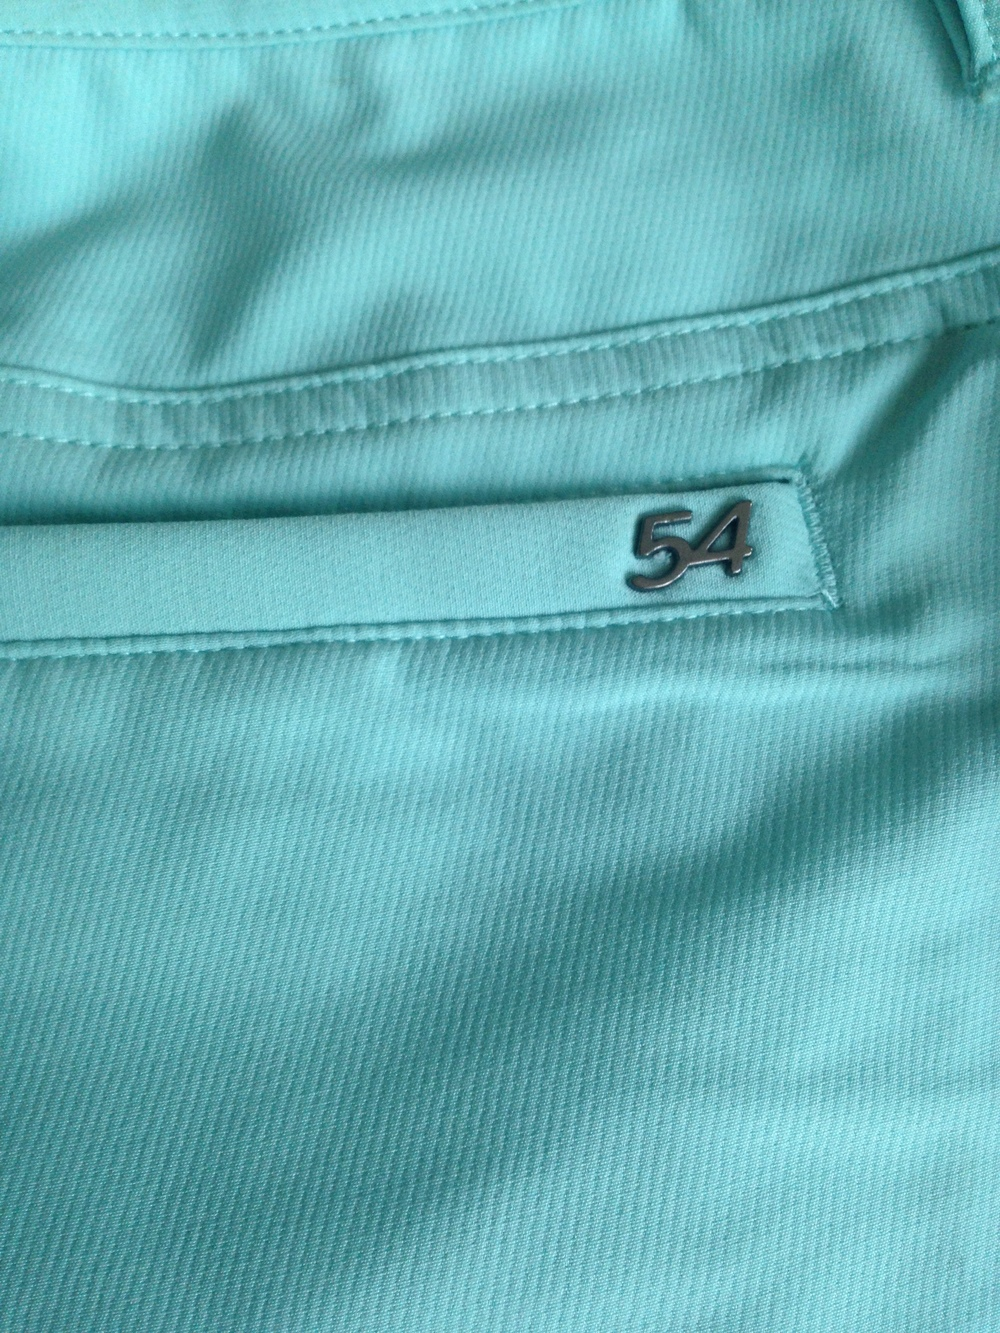 The Chase54 logo on the back pocket of the Dalton Shorts